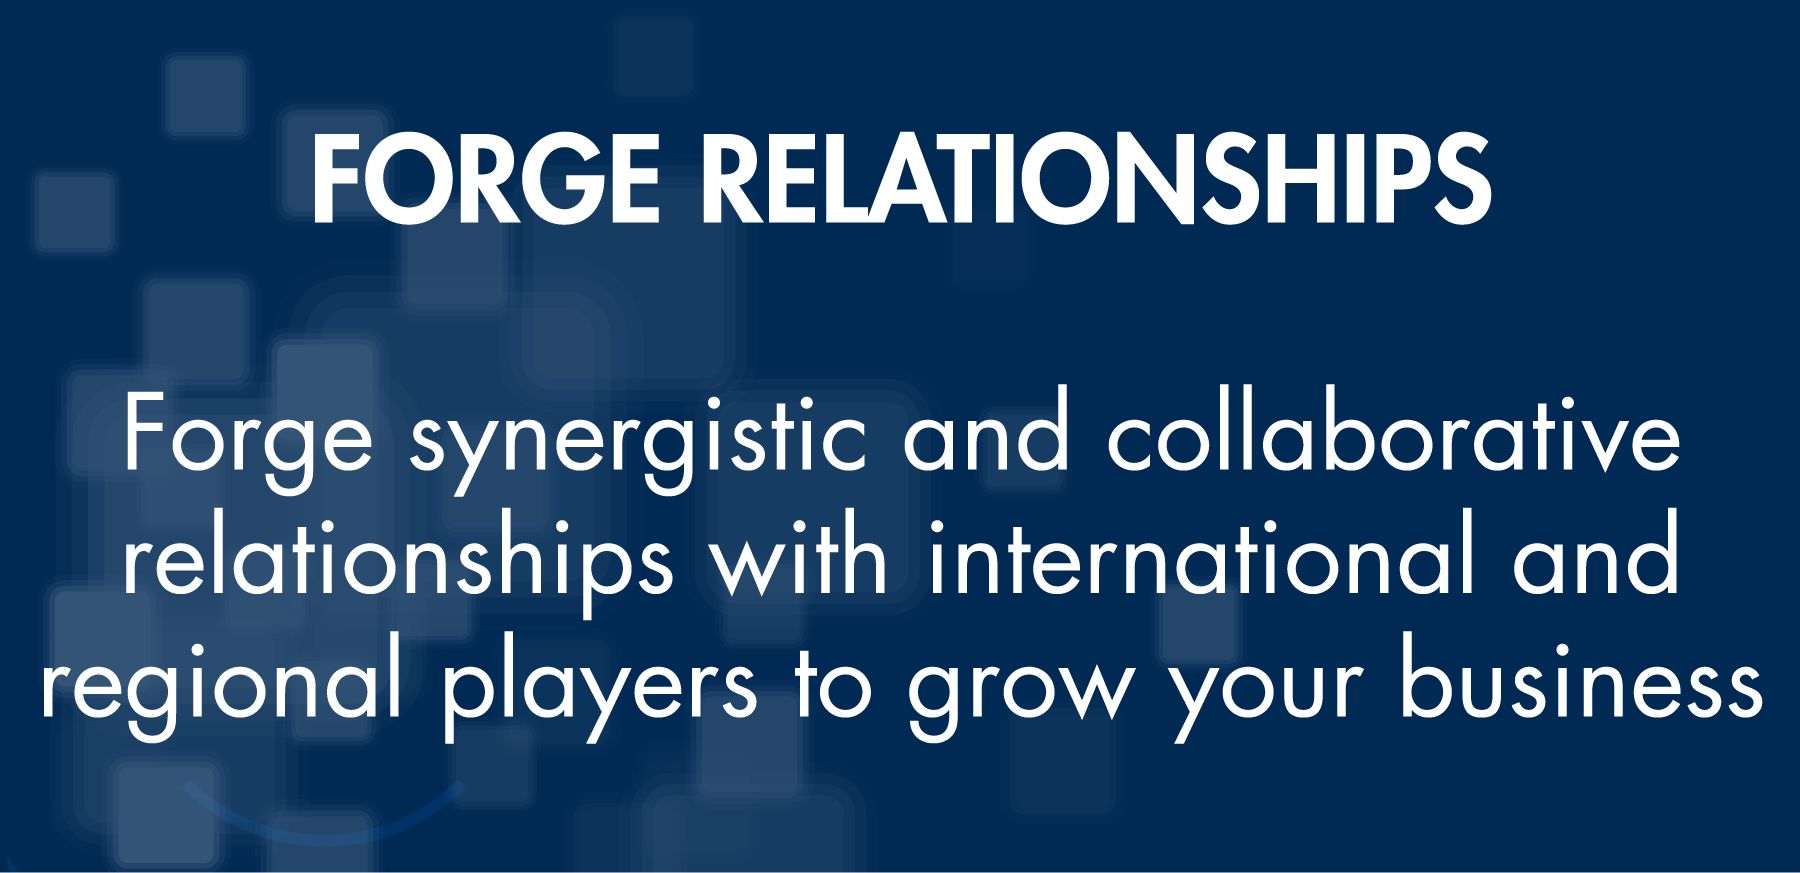 FORGE RELATIONSHIPS